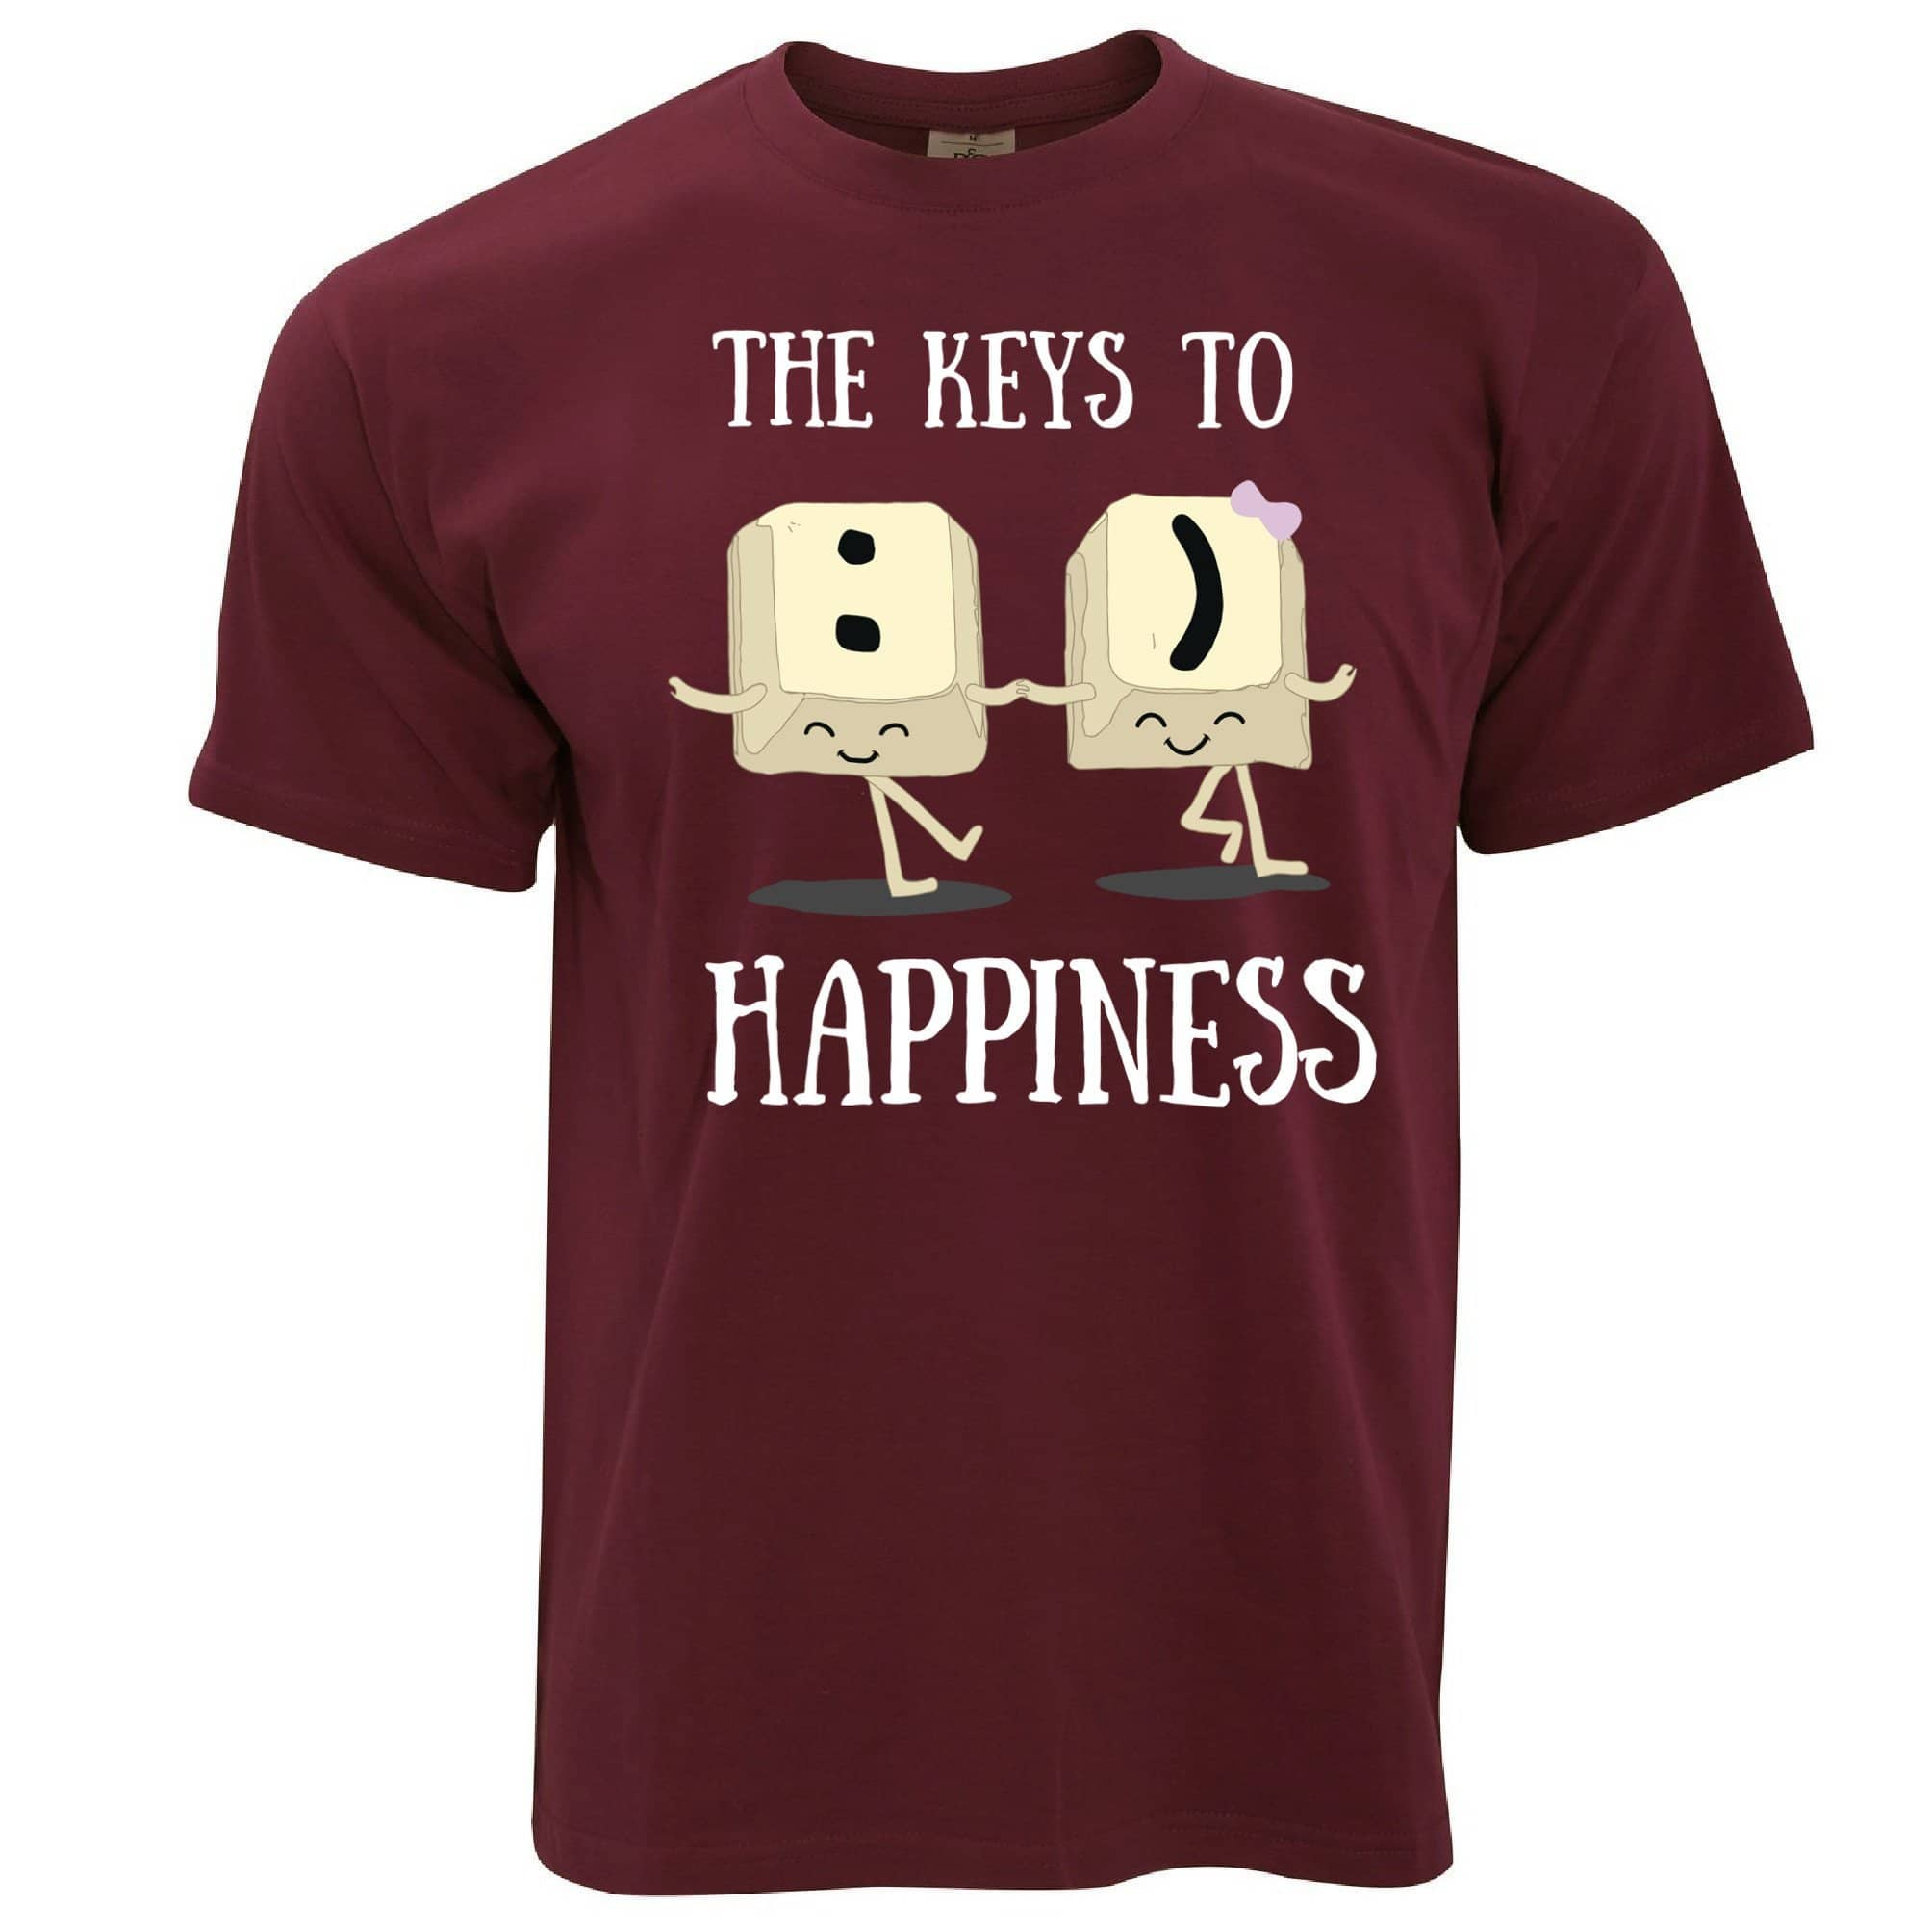 Novelty Computer T Shirt The Keys To Happiness :) Pun